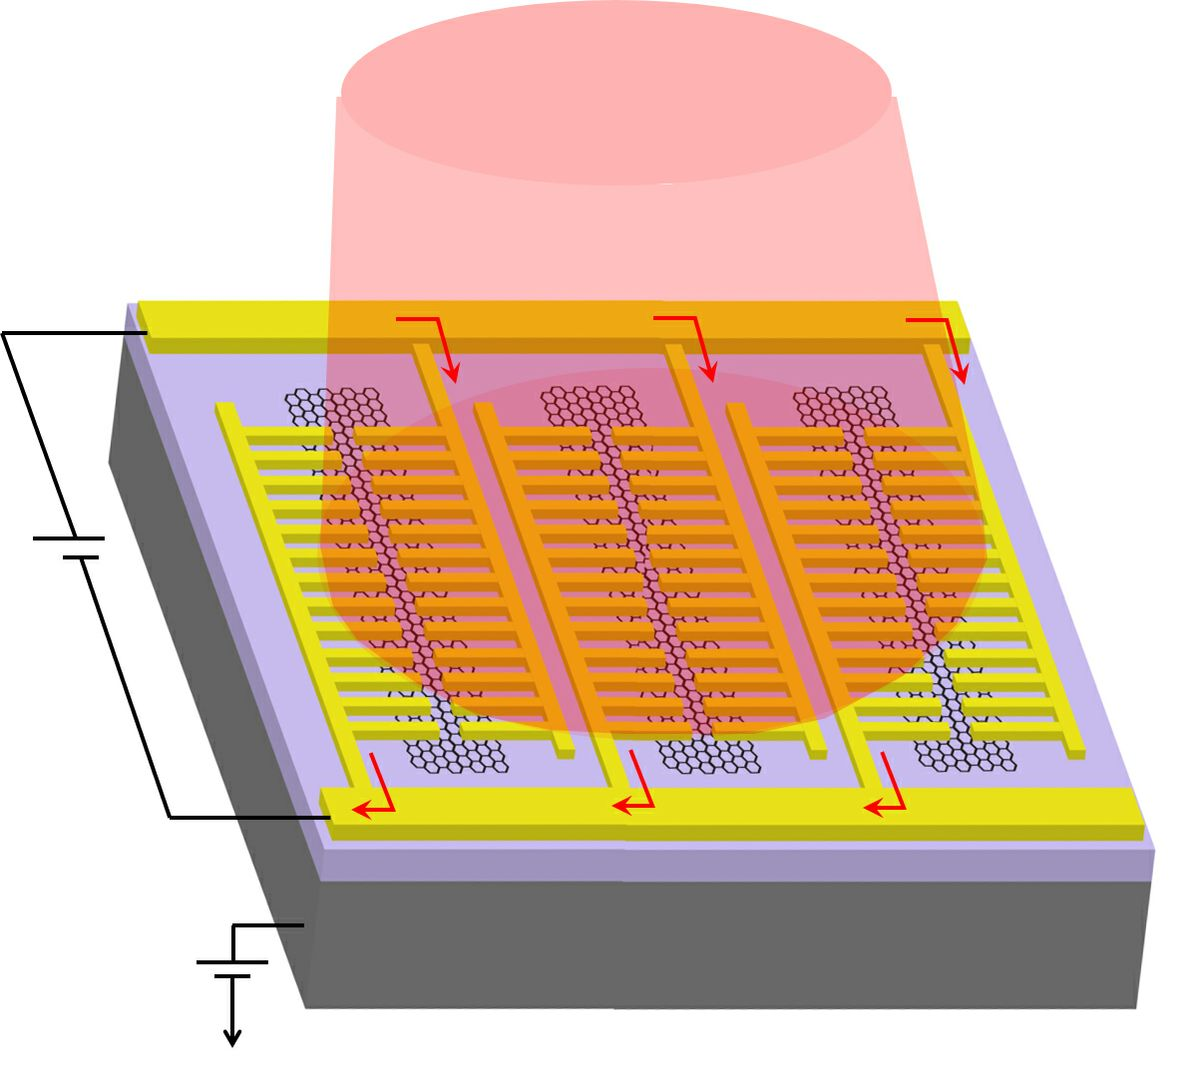 Photodetector schematic